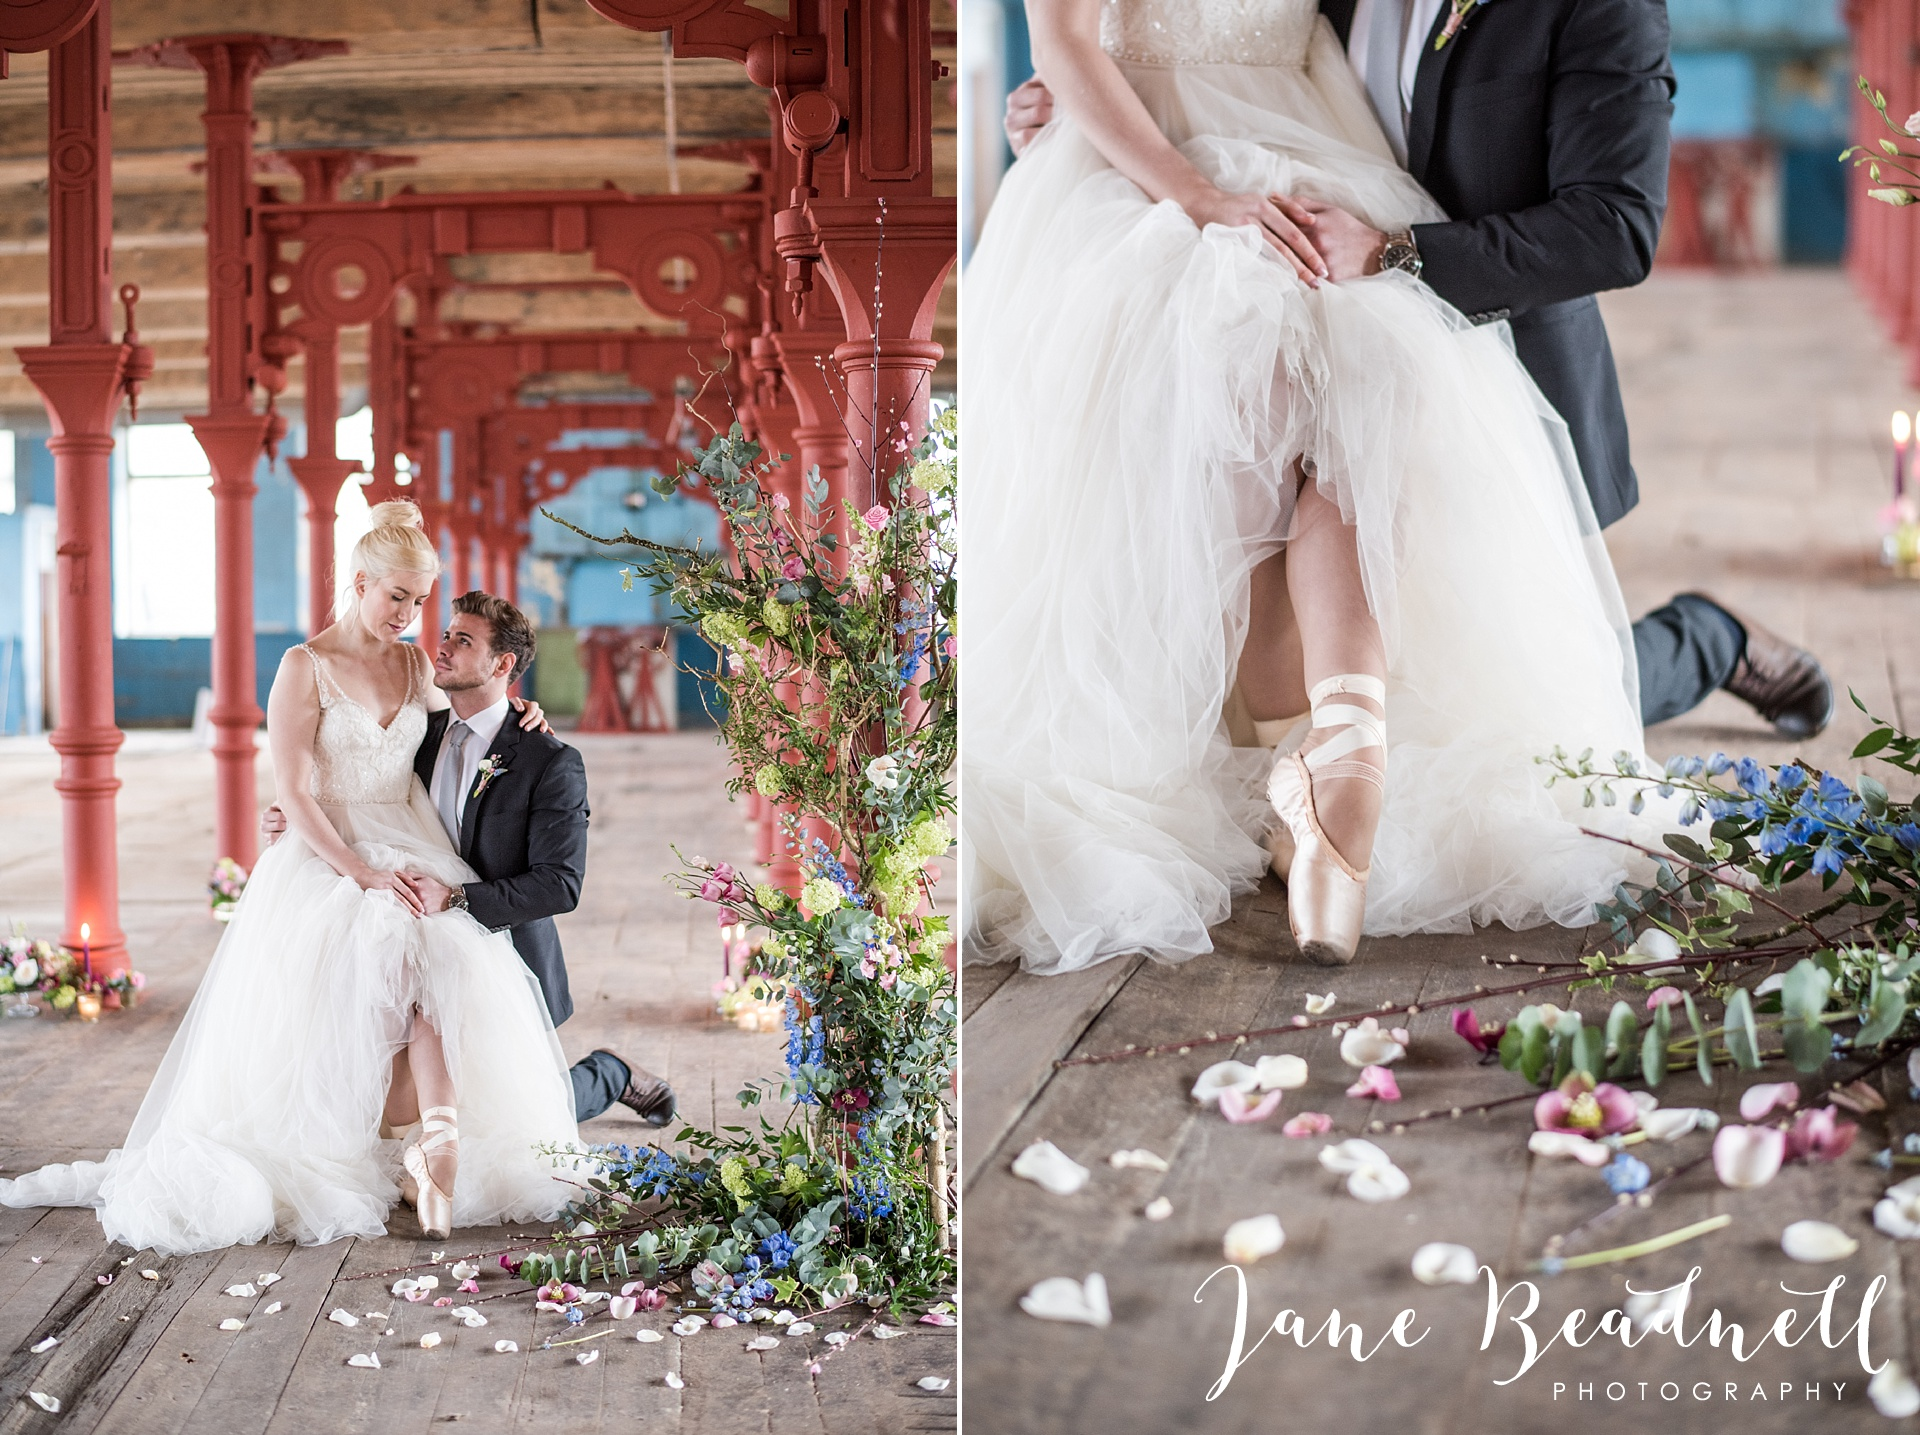 Ballet themed styled wedding shoot at Dalton Mills by Jane Beadnell Photography-0_0070